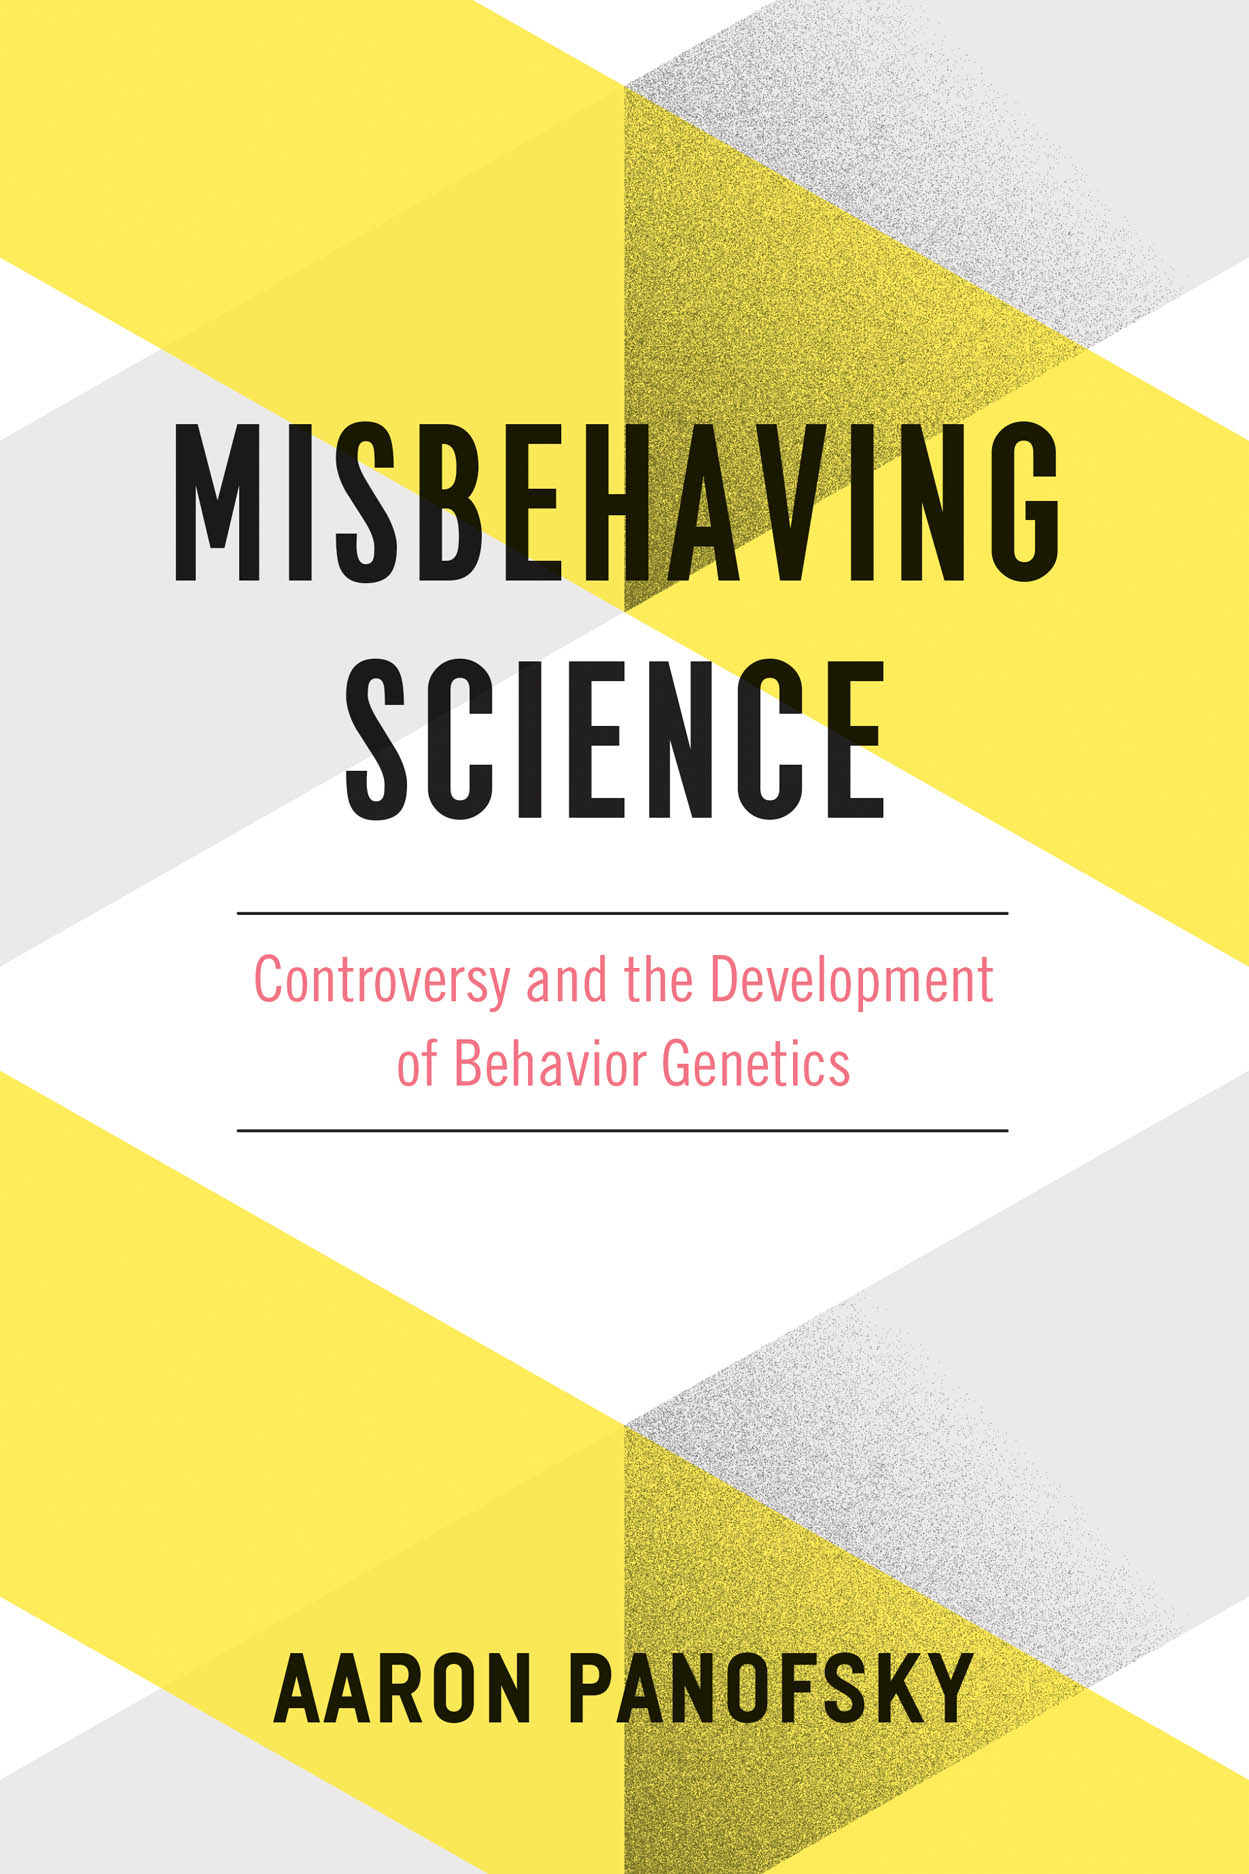 Misbehaving Science: Controversy and the Development of Behavior Genetics